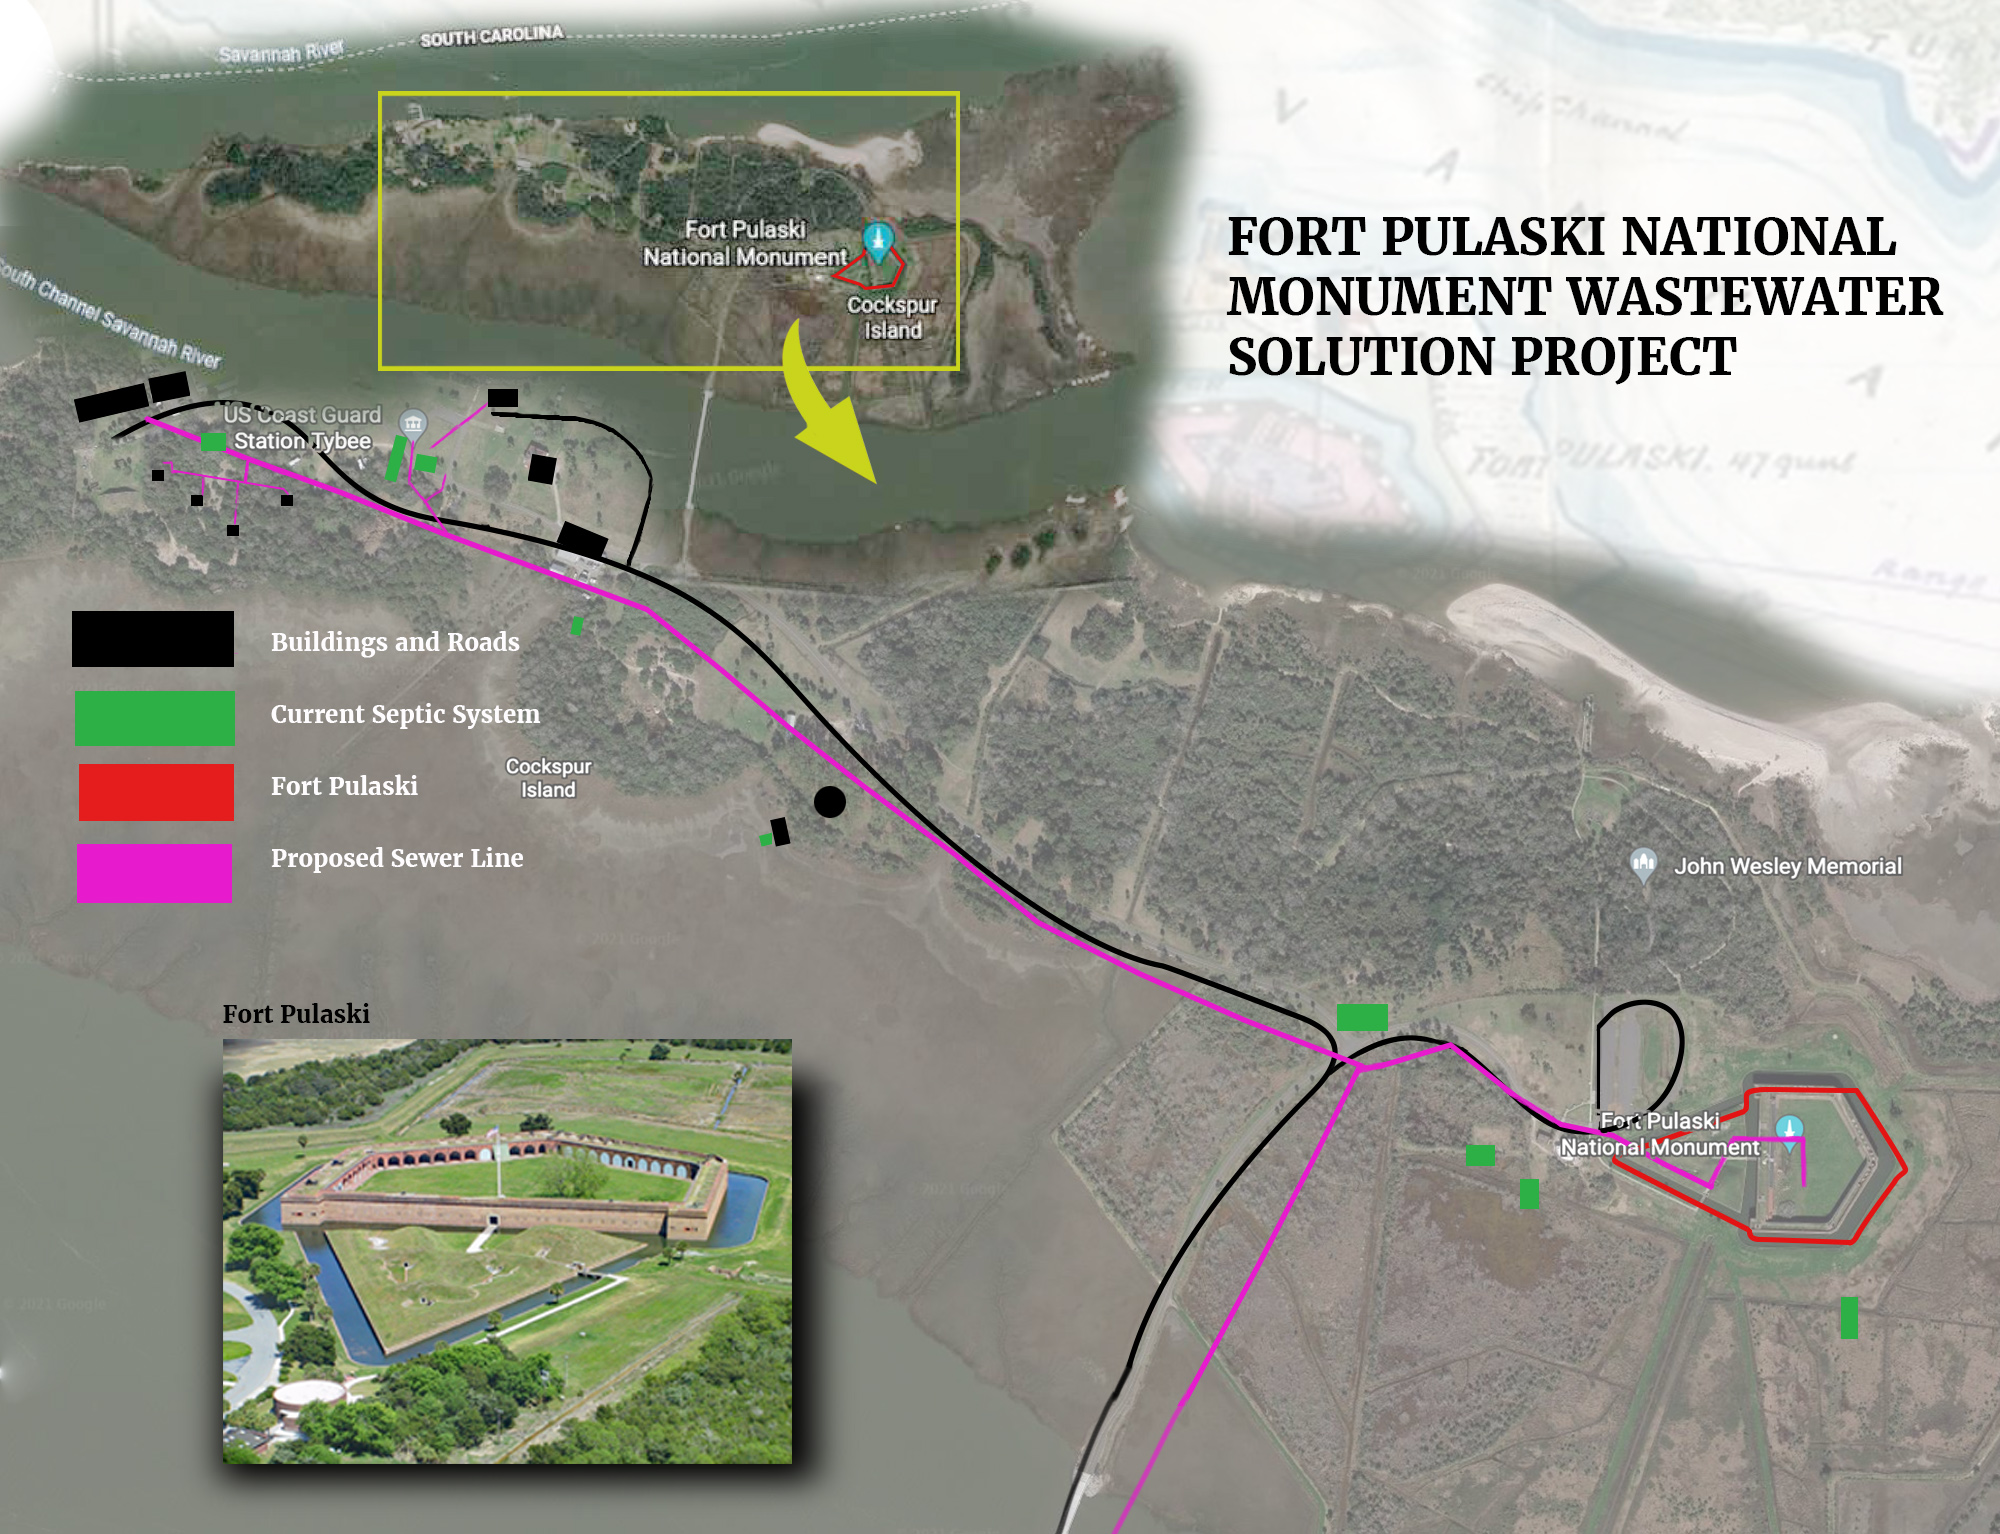 A map showing the wastewater pipe proposed by UGA student group.